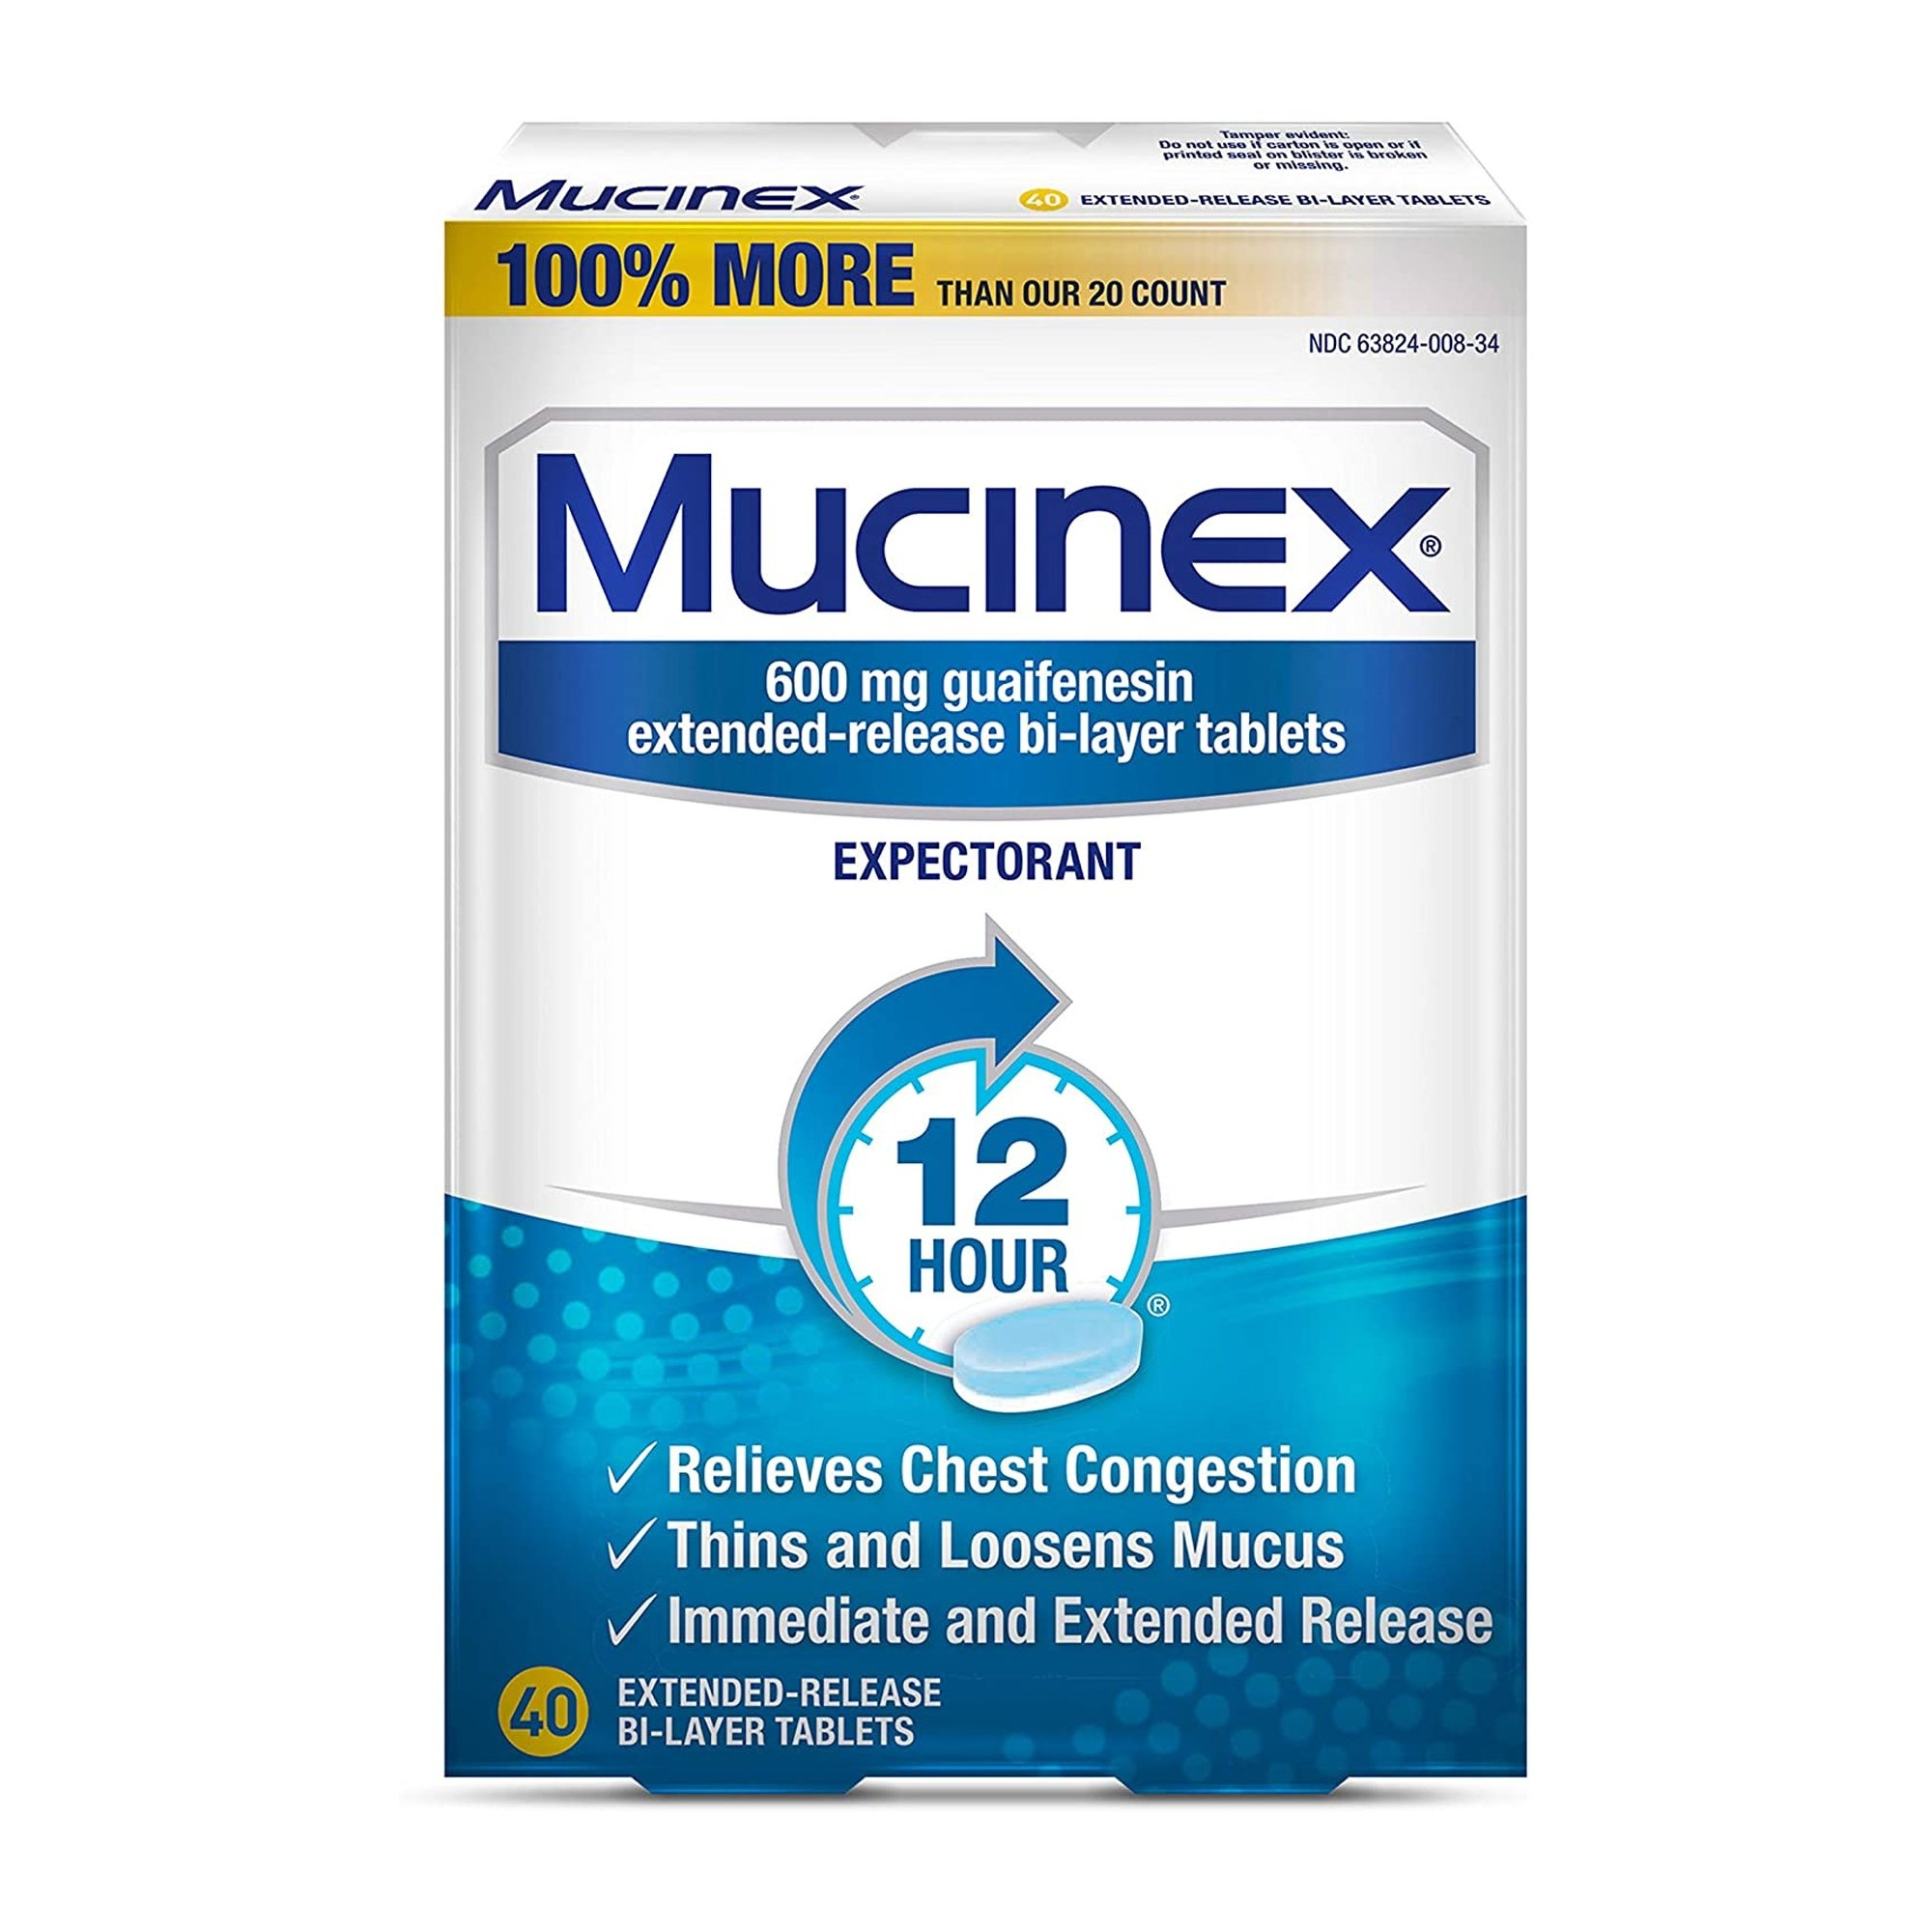 Mucinex Guaifenesin Cold and Cough Relief, 600 mg, 63824000834, Box of 40